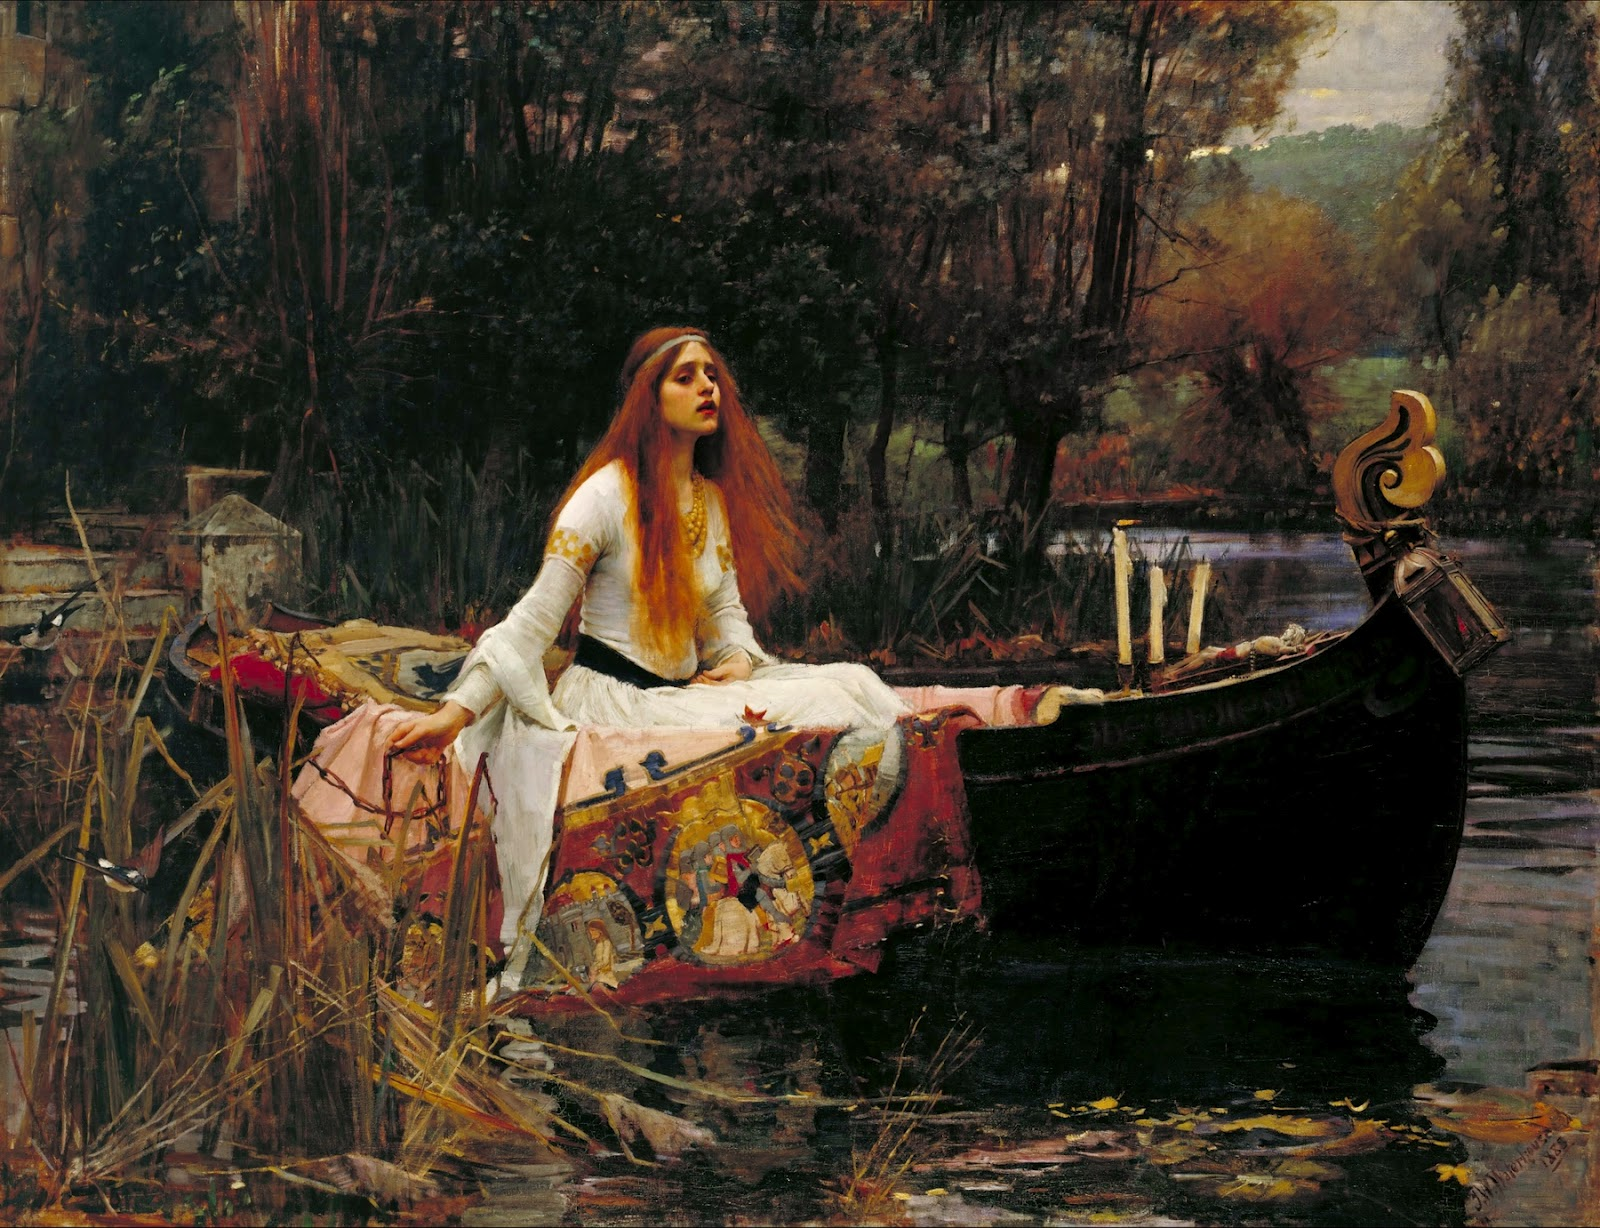 Waterhouse John+William+Waterhouse+-+The+Lady+of+Shalott